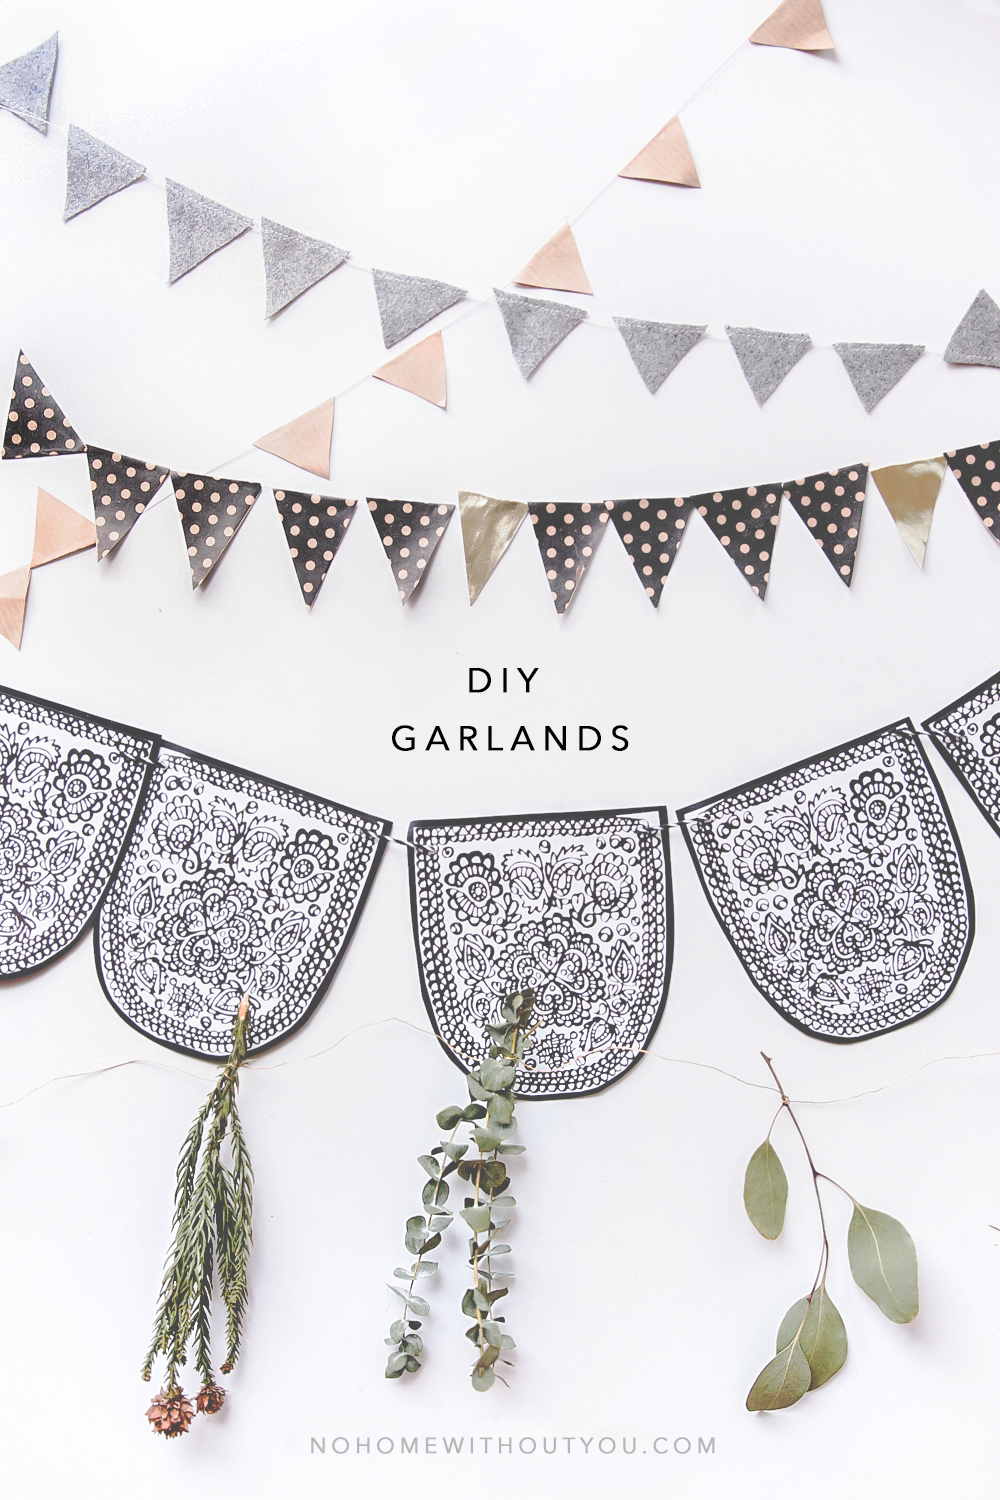 DIY garlands No Home Without You